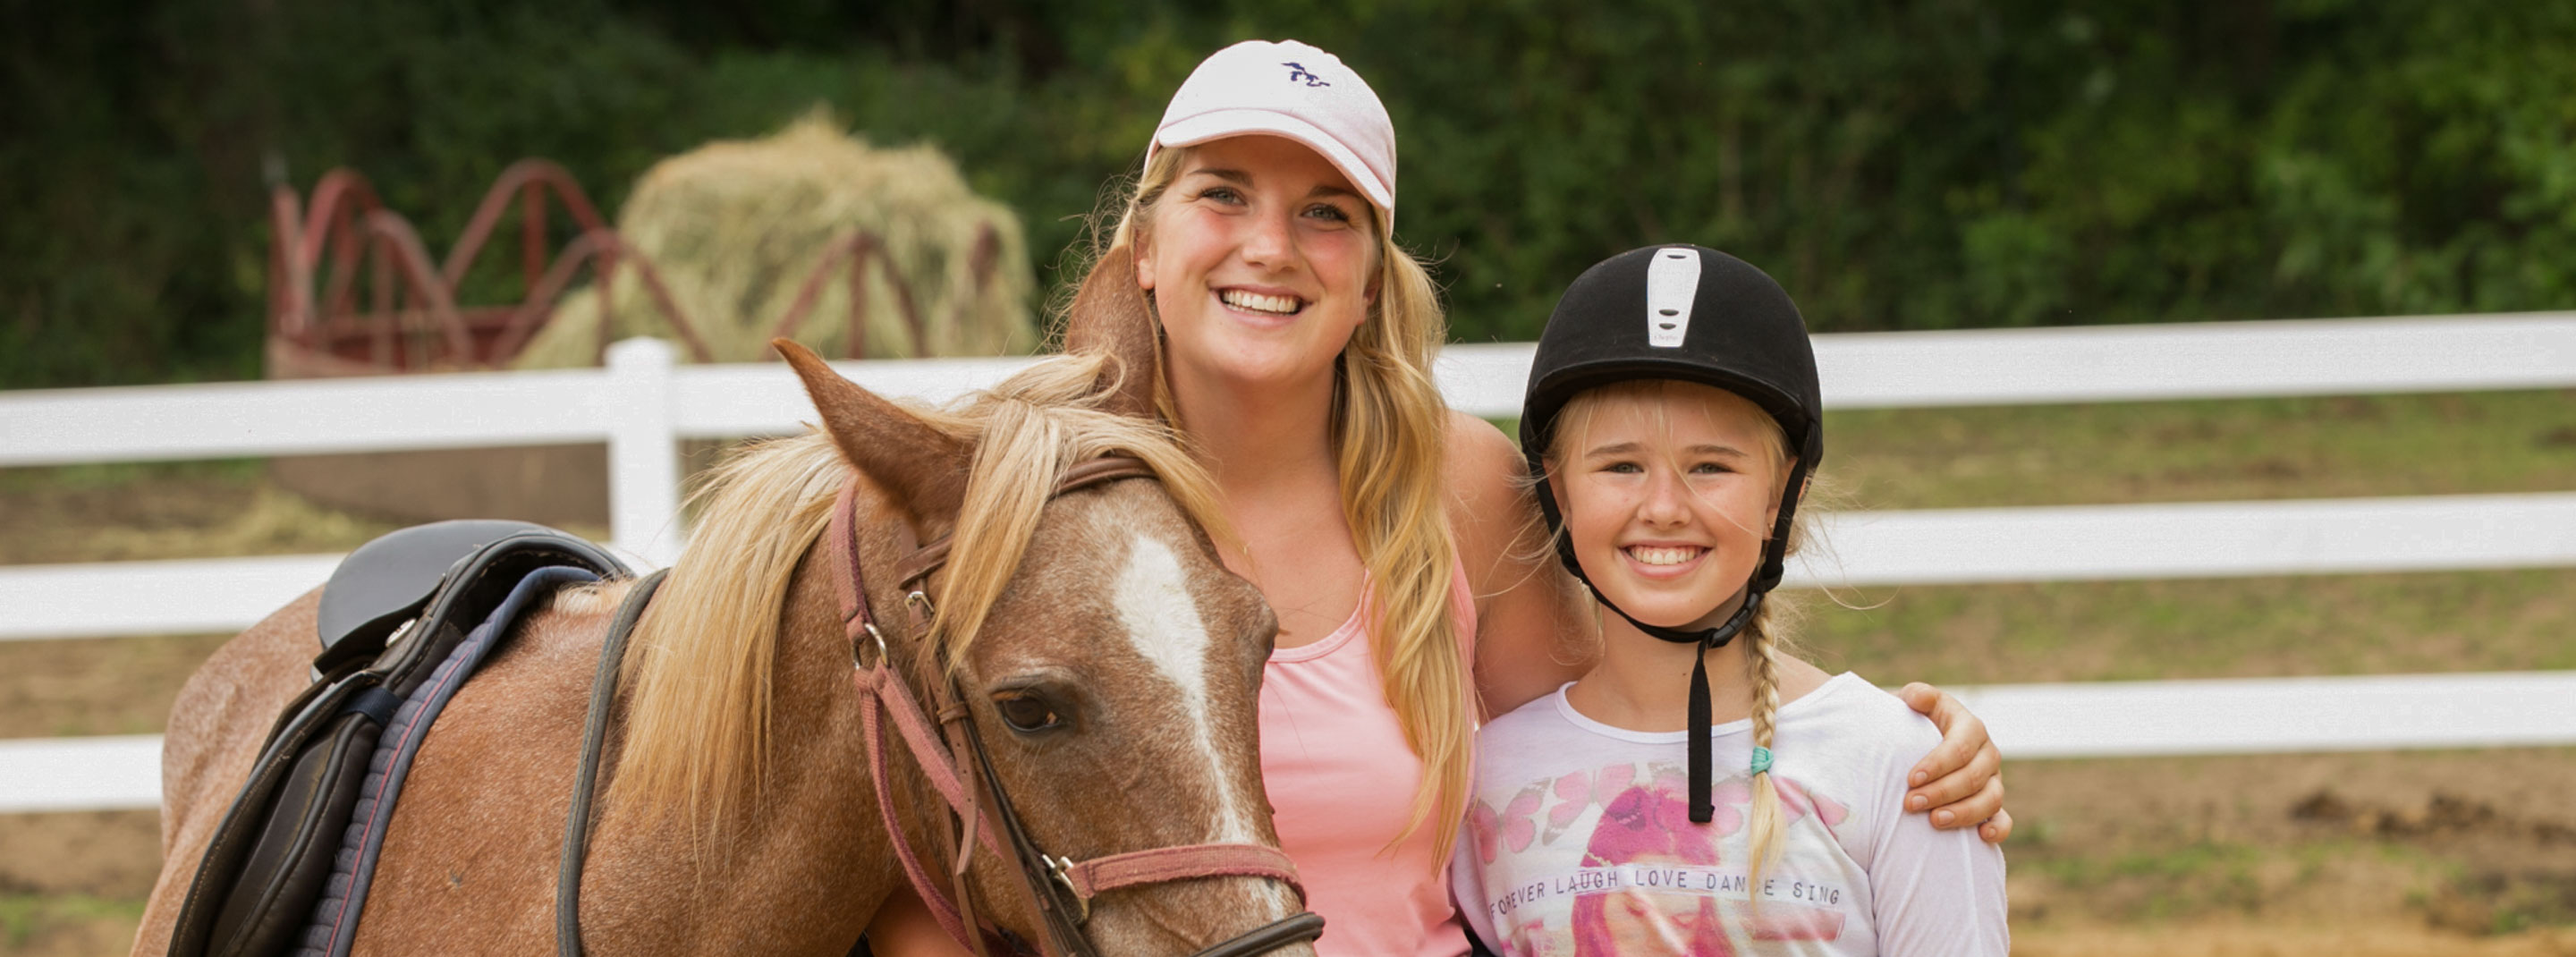 Staff and camper at horseback riding